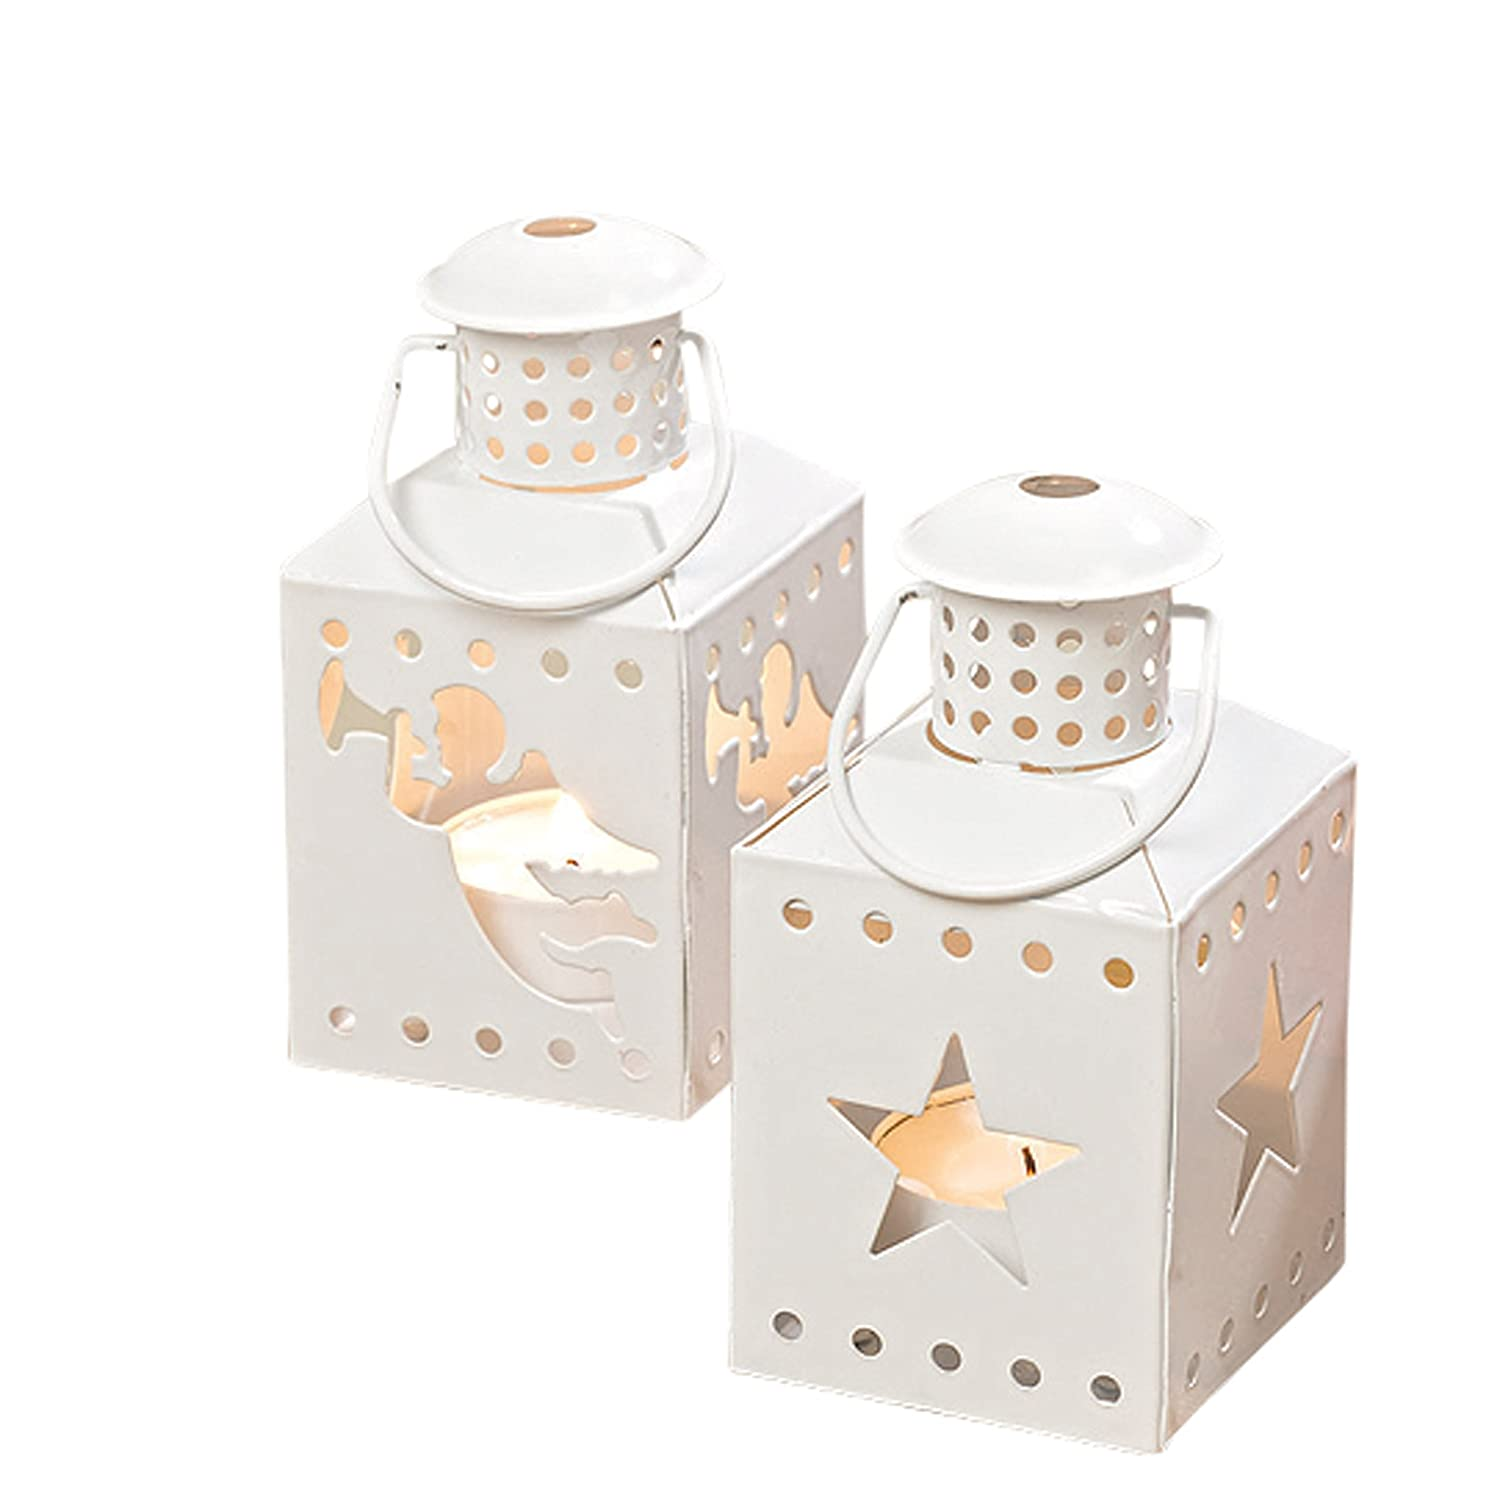 Mini Christmas Rustic White Lantern Candle Holders Set of 12 | ChristmasTablescapeDecor.com